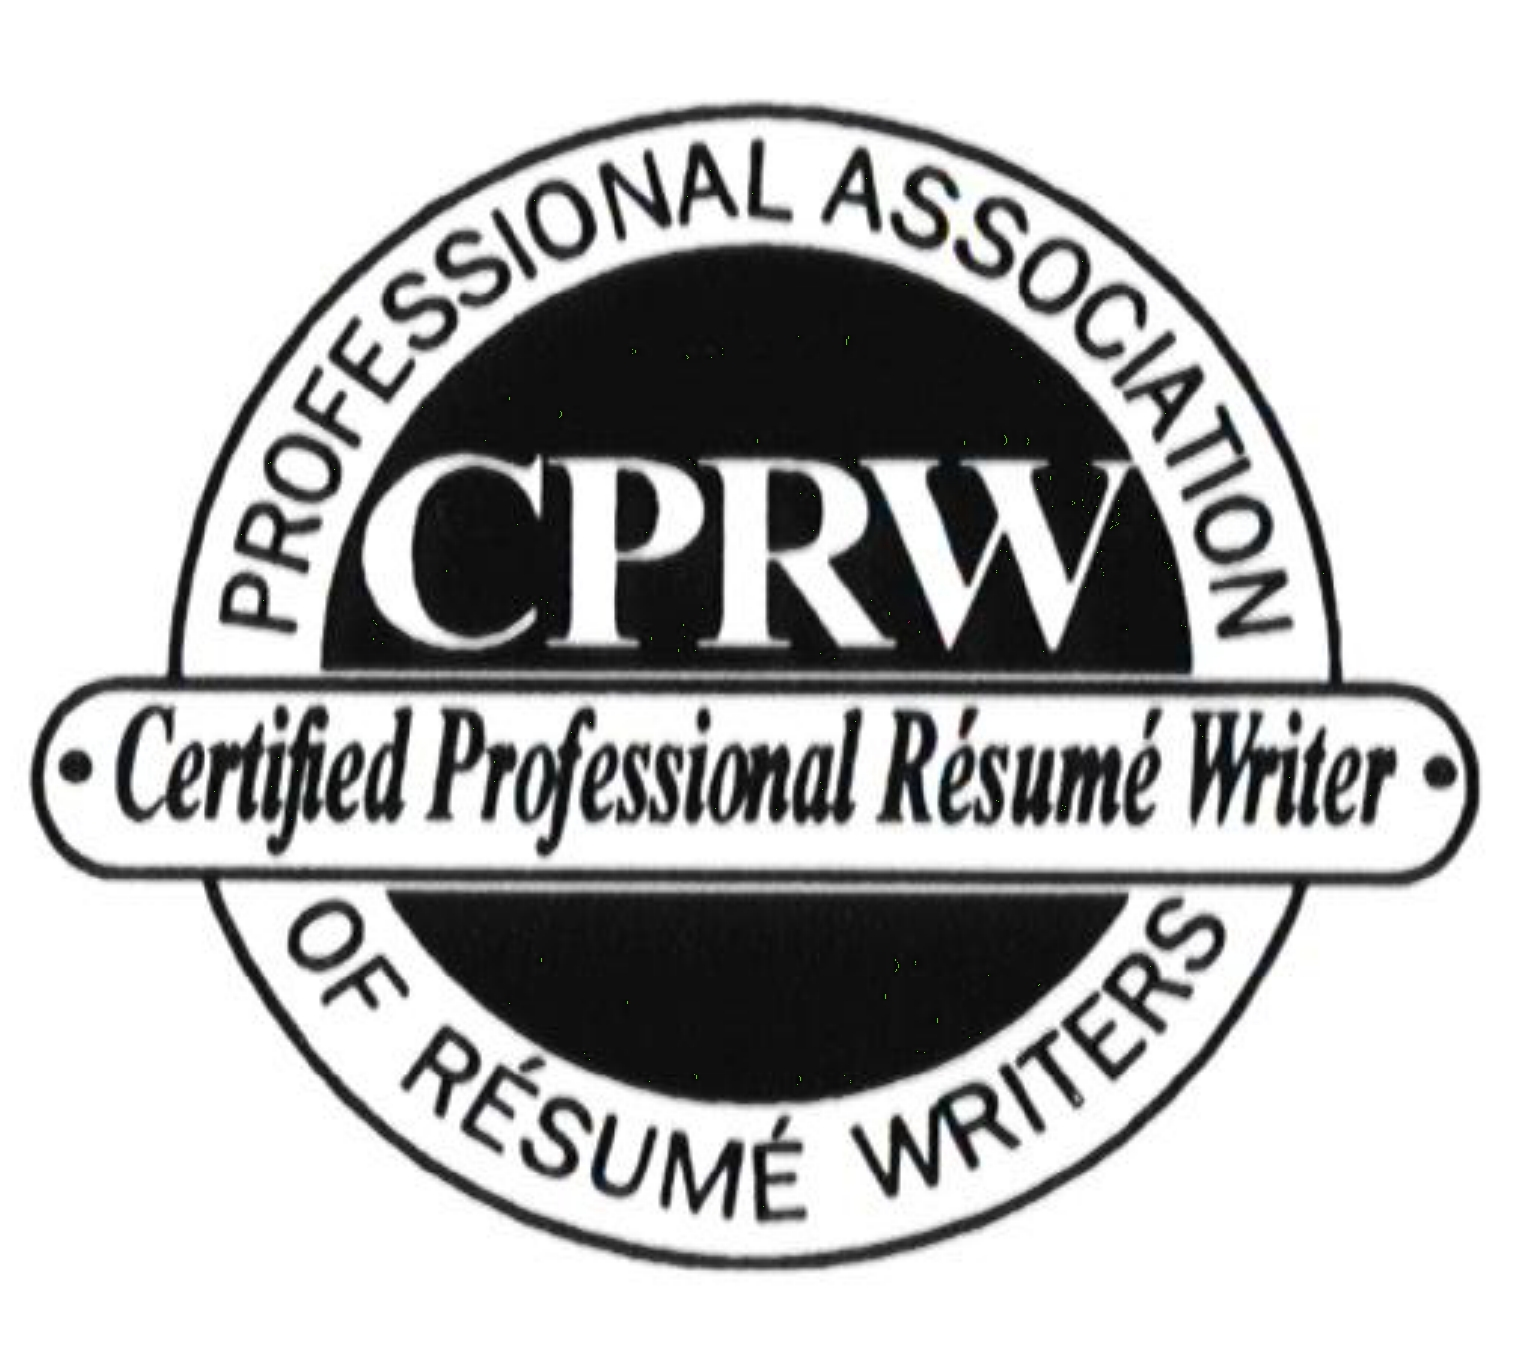 cprw certified professional resume writer - Write A Professional Resume